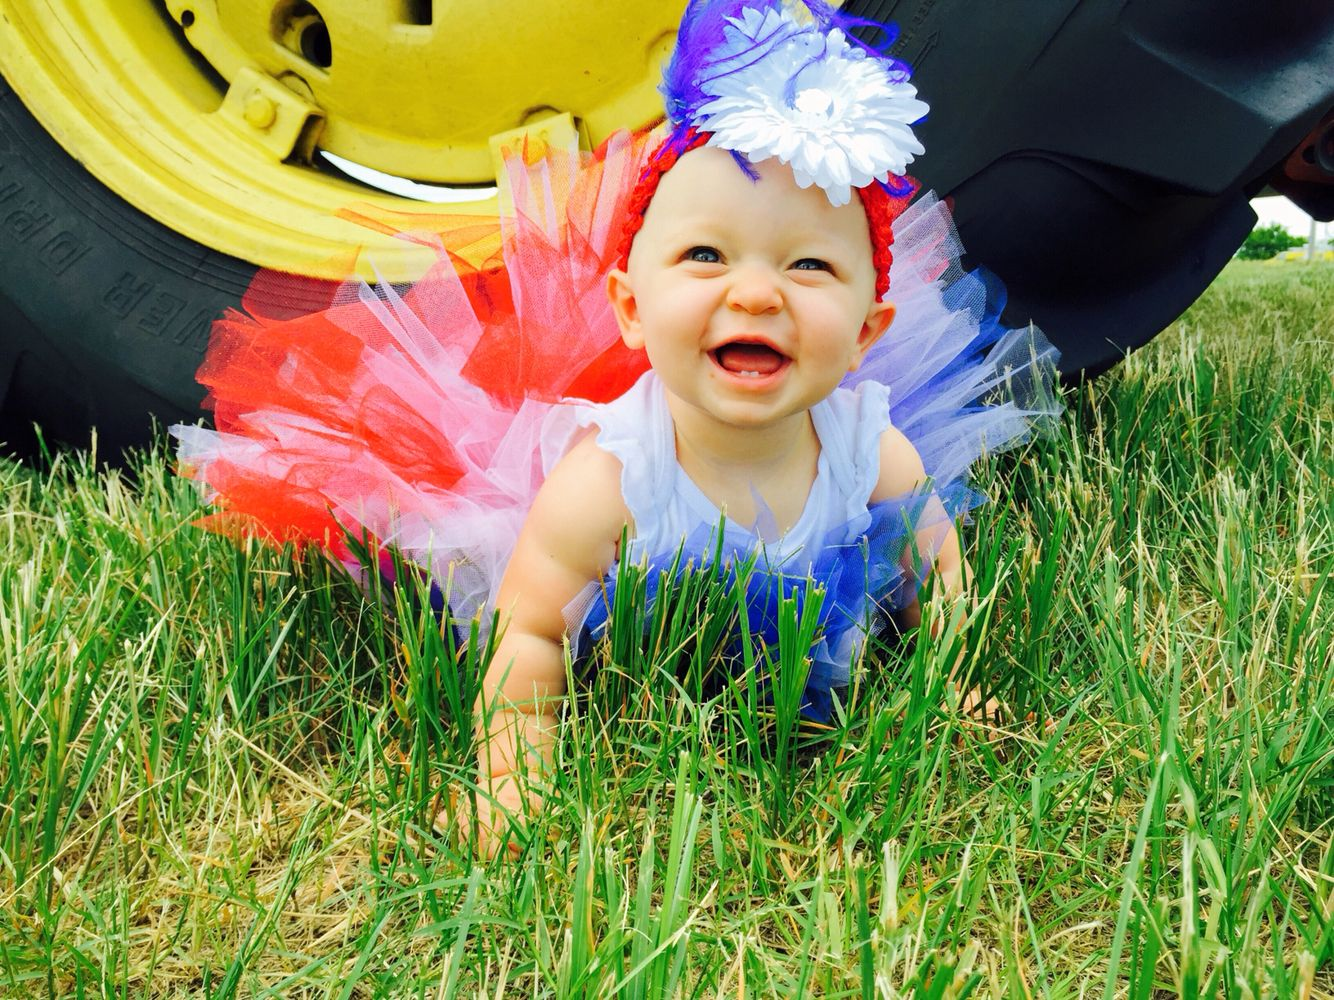 My baby's 1st 4th of July pictures. Red white and blue diy tutu and headband. John Deere tractor